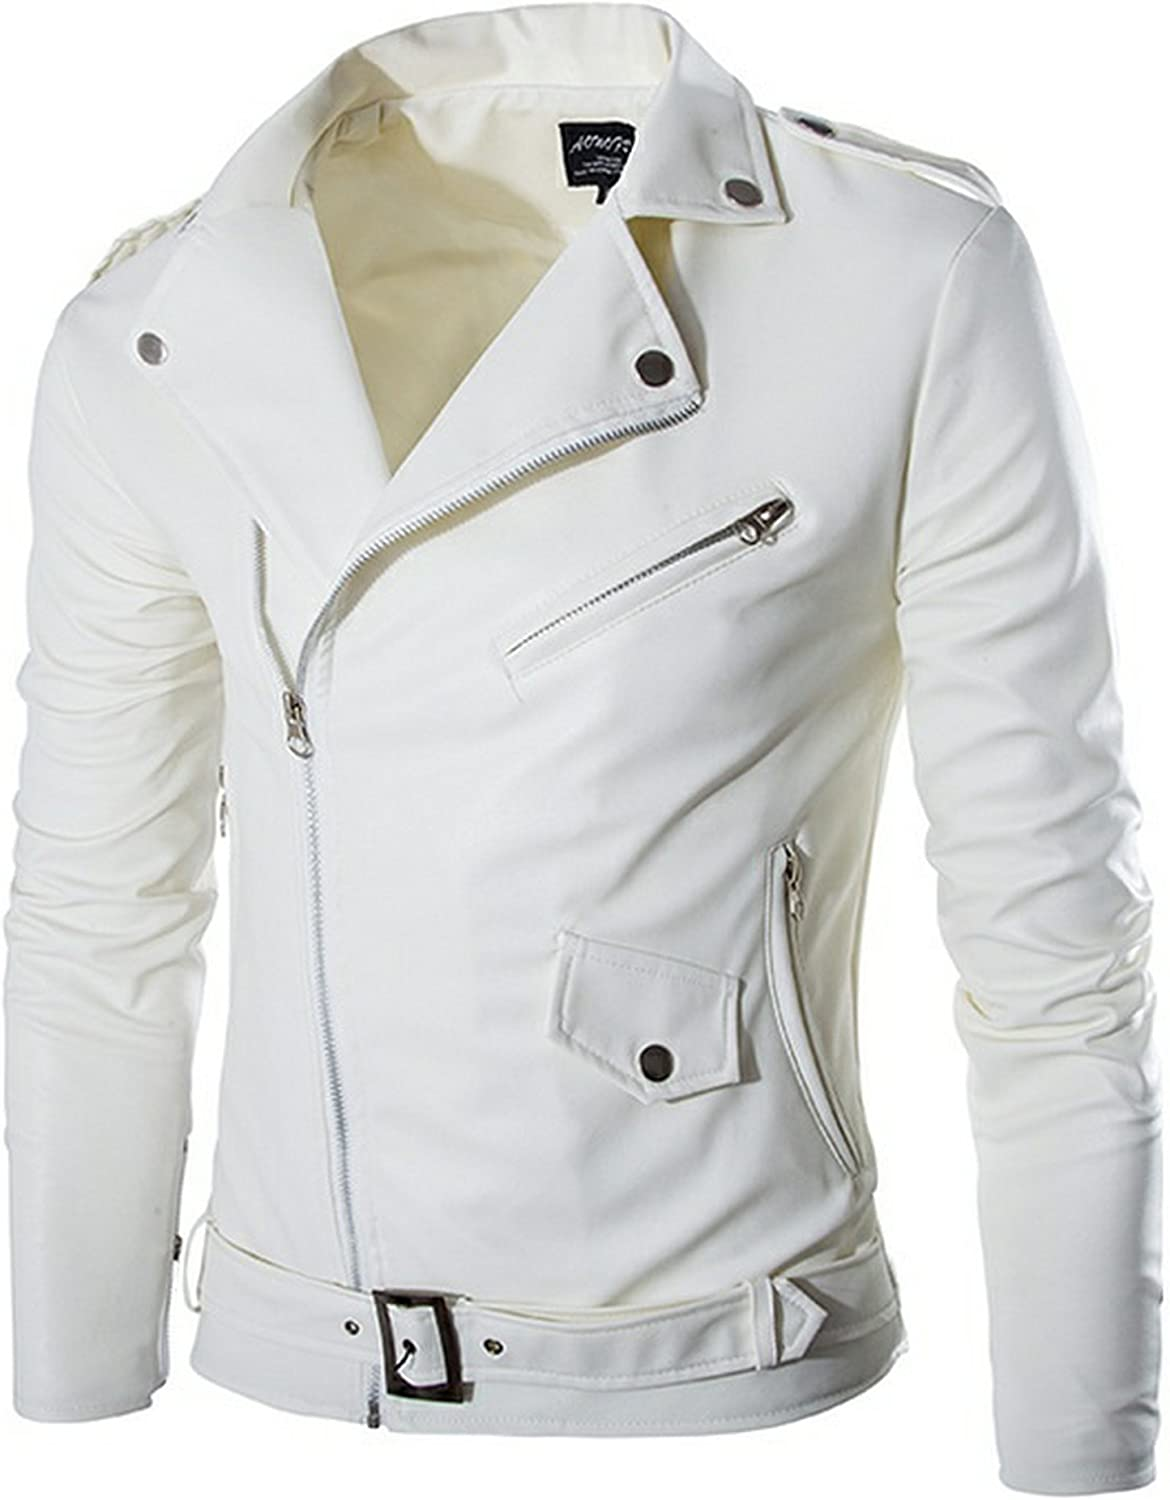 WSLCN Mens Moto New Orleans Mall Jacket Inventory cleanup selling sale Faux Leather Clas Motorcycle Biker